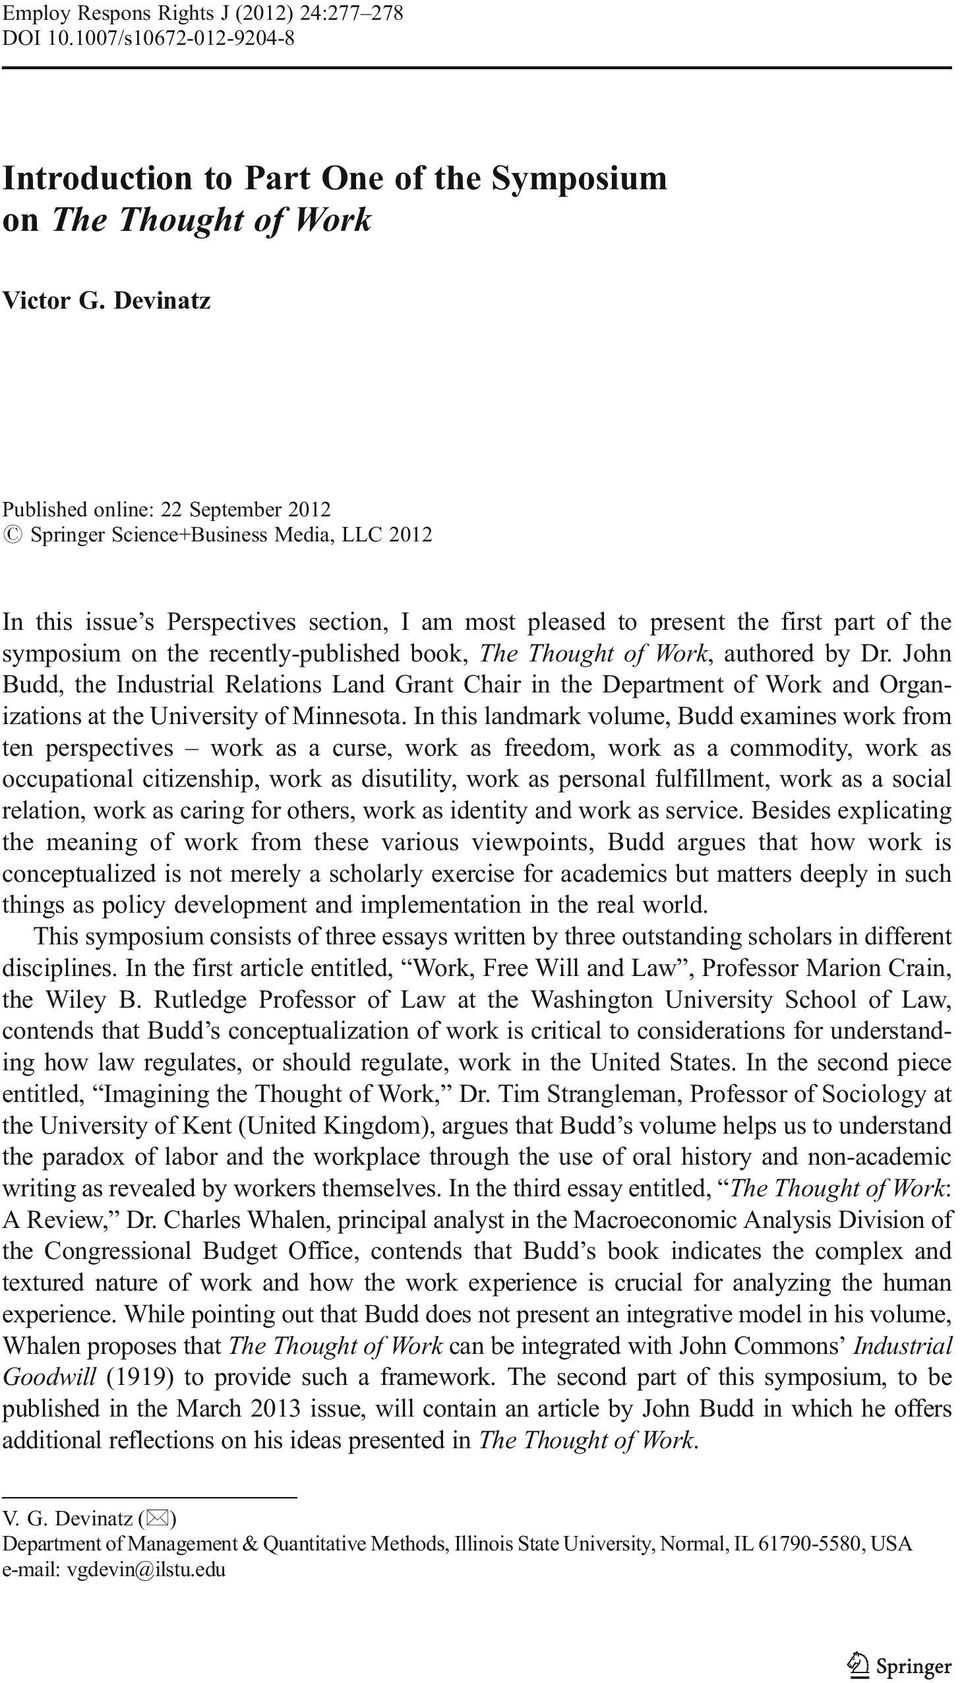 recently-published book, The Thought of Work, authored by Dr. John Budd, the Industrial Relations Land Grant Chair in the Department of Work and Organizations at the University of Minnesota.